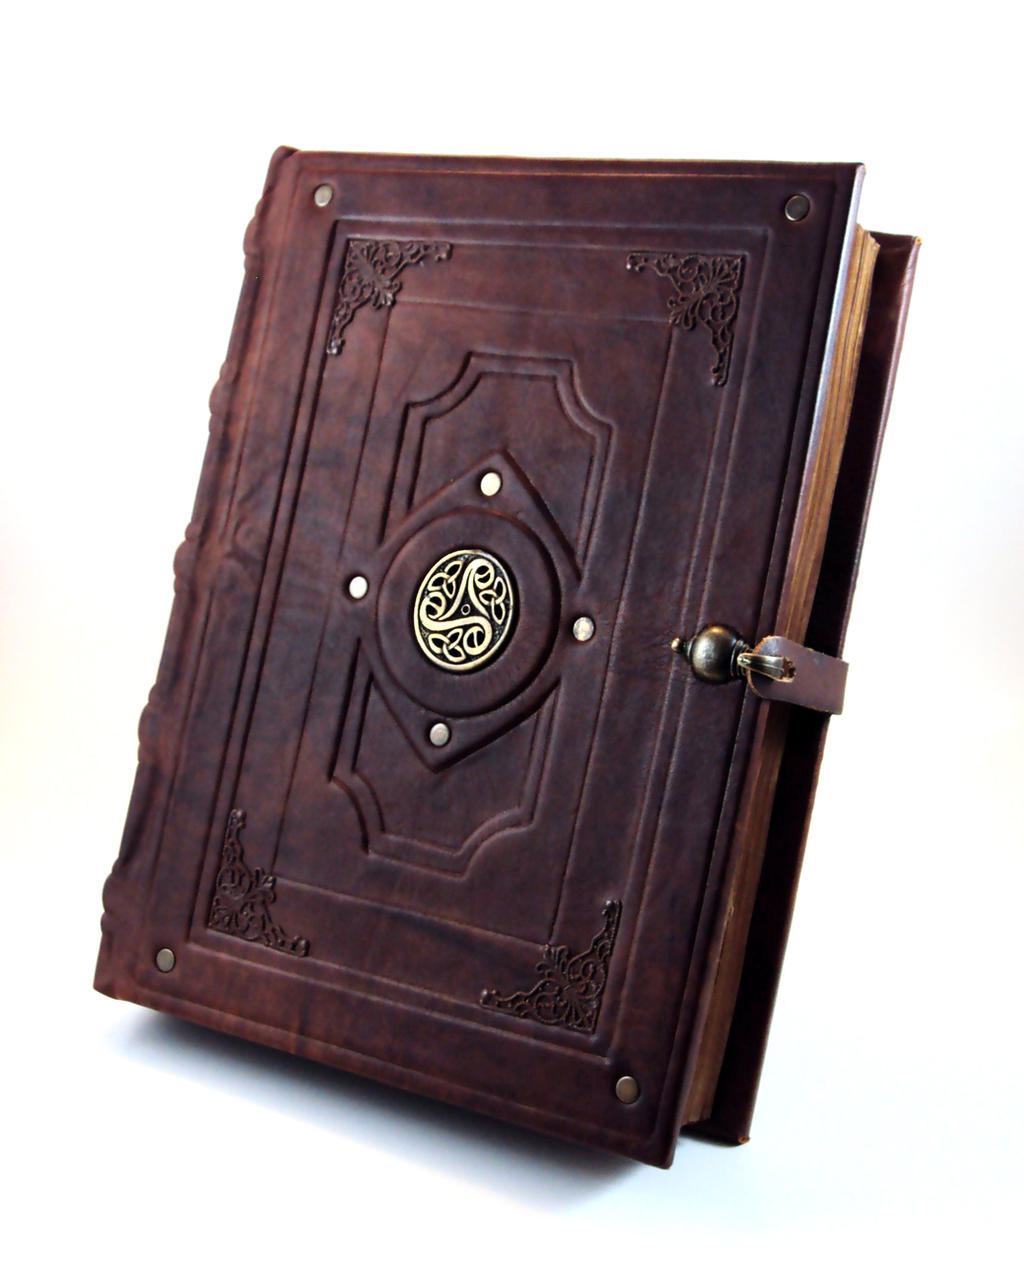 Antique Book Replica By Millecuirs On Deviantart